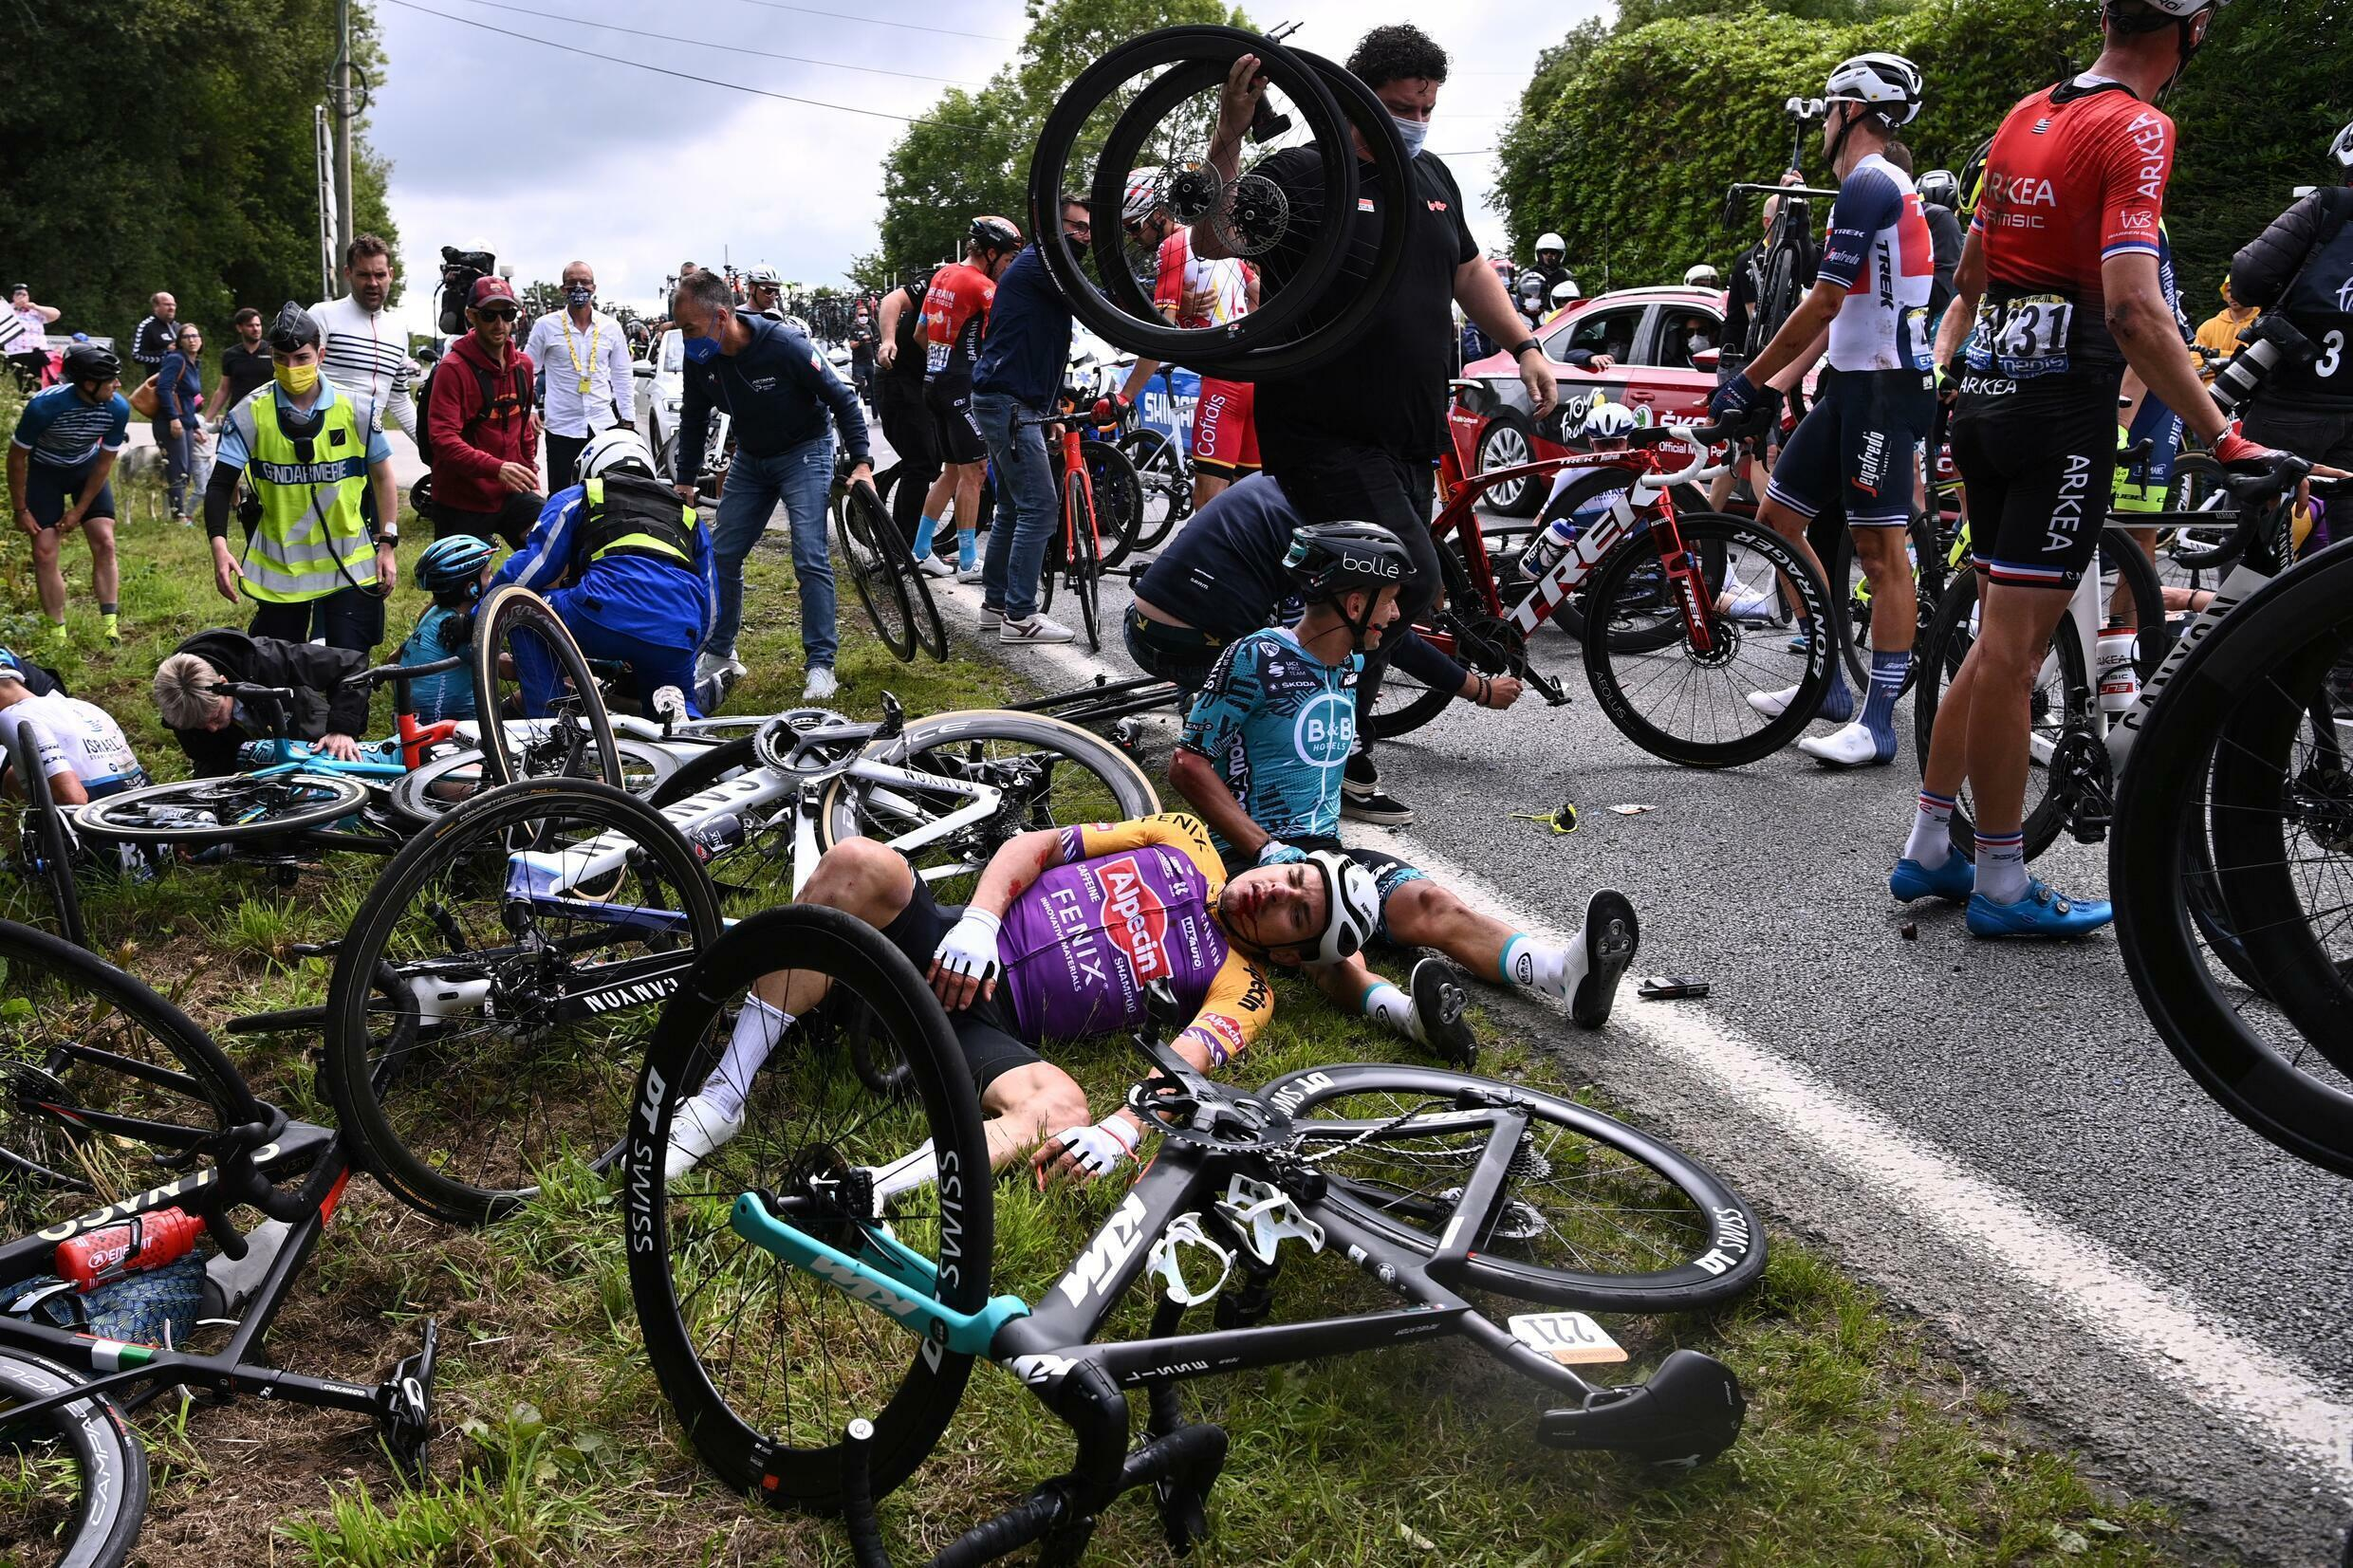 A 31-year-old Tour de France spectator who caused dozens of riders to fall after she leant onto the road while brandishing a sign faces a fine of up to €15,000 and a year in prison.